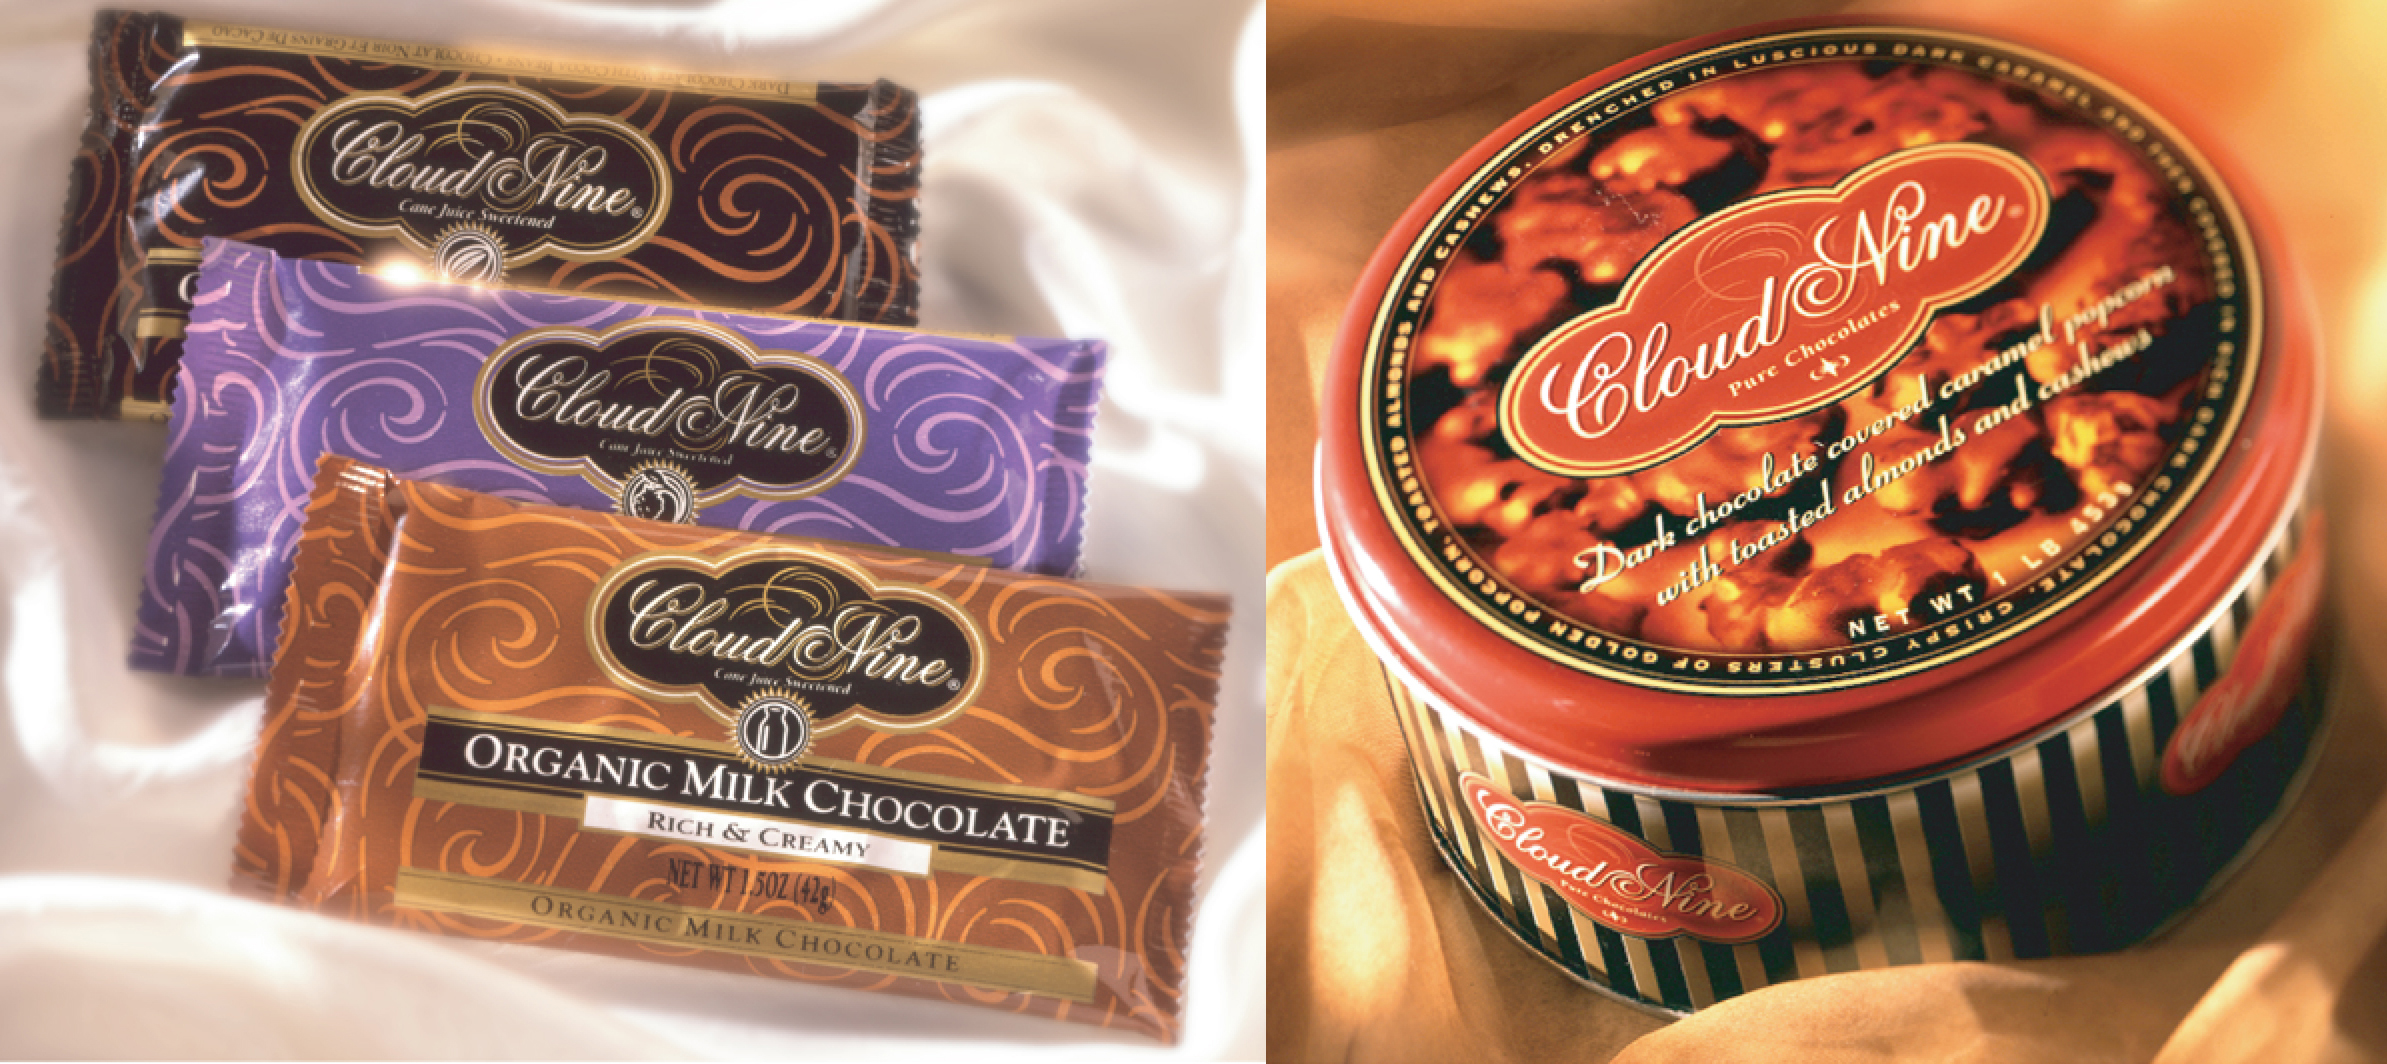 Cloud Nine Chocolates & Candy Packaging